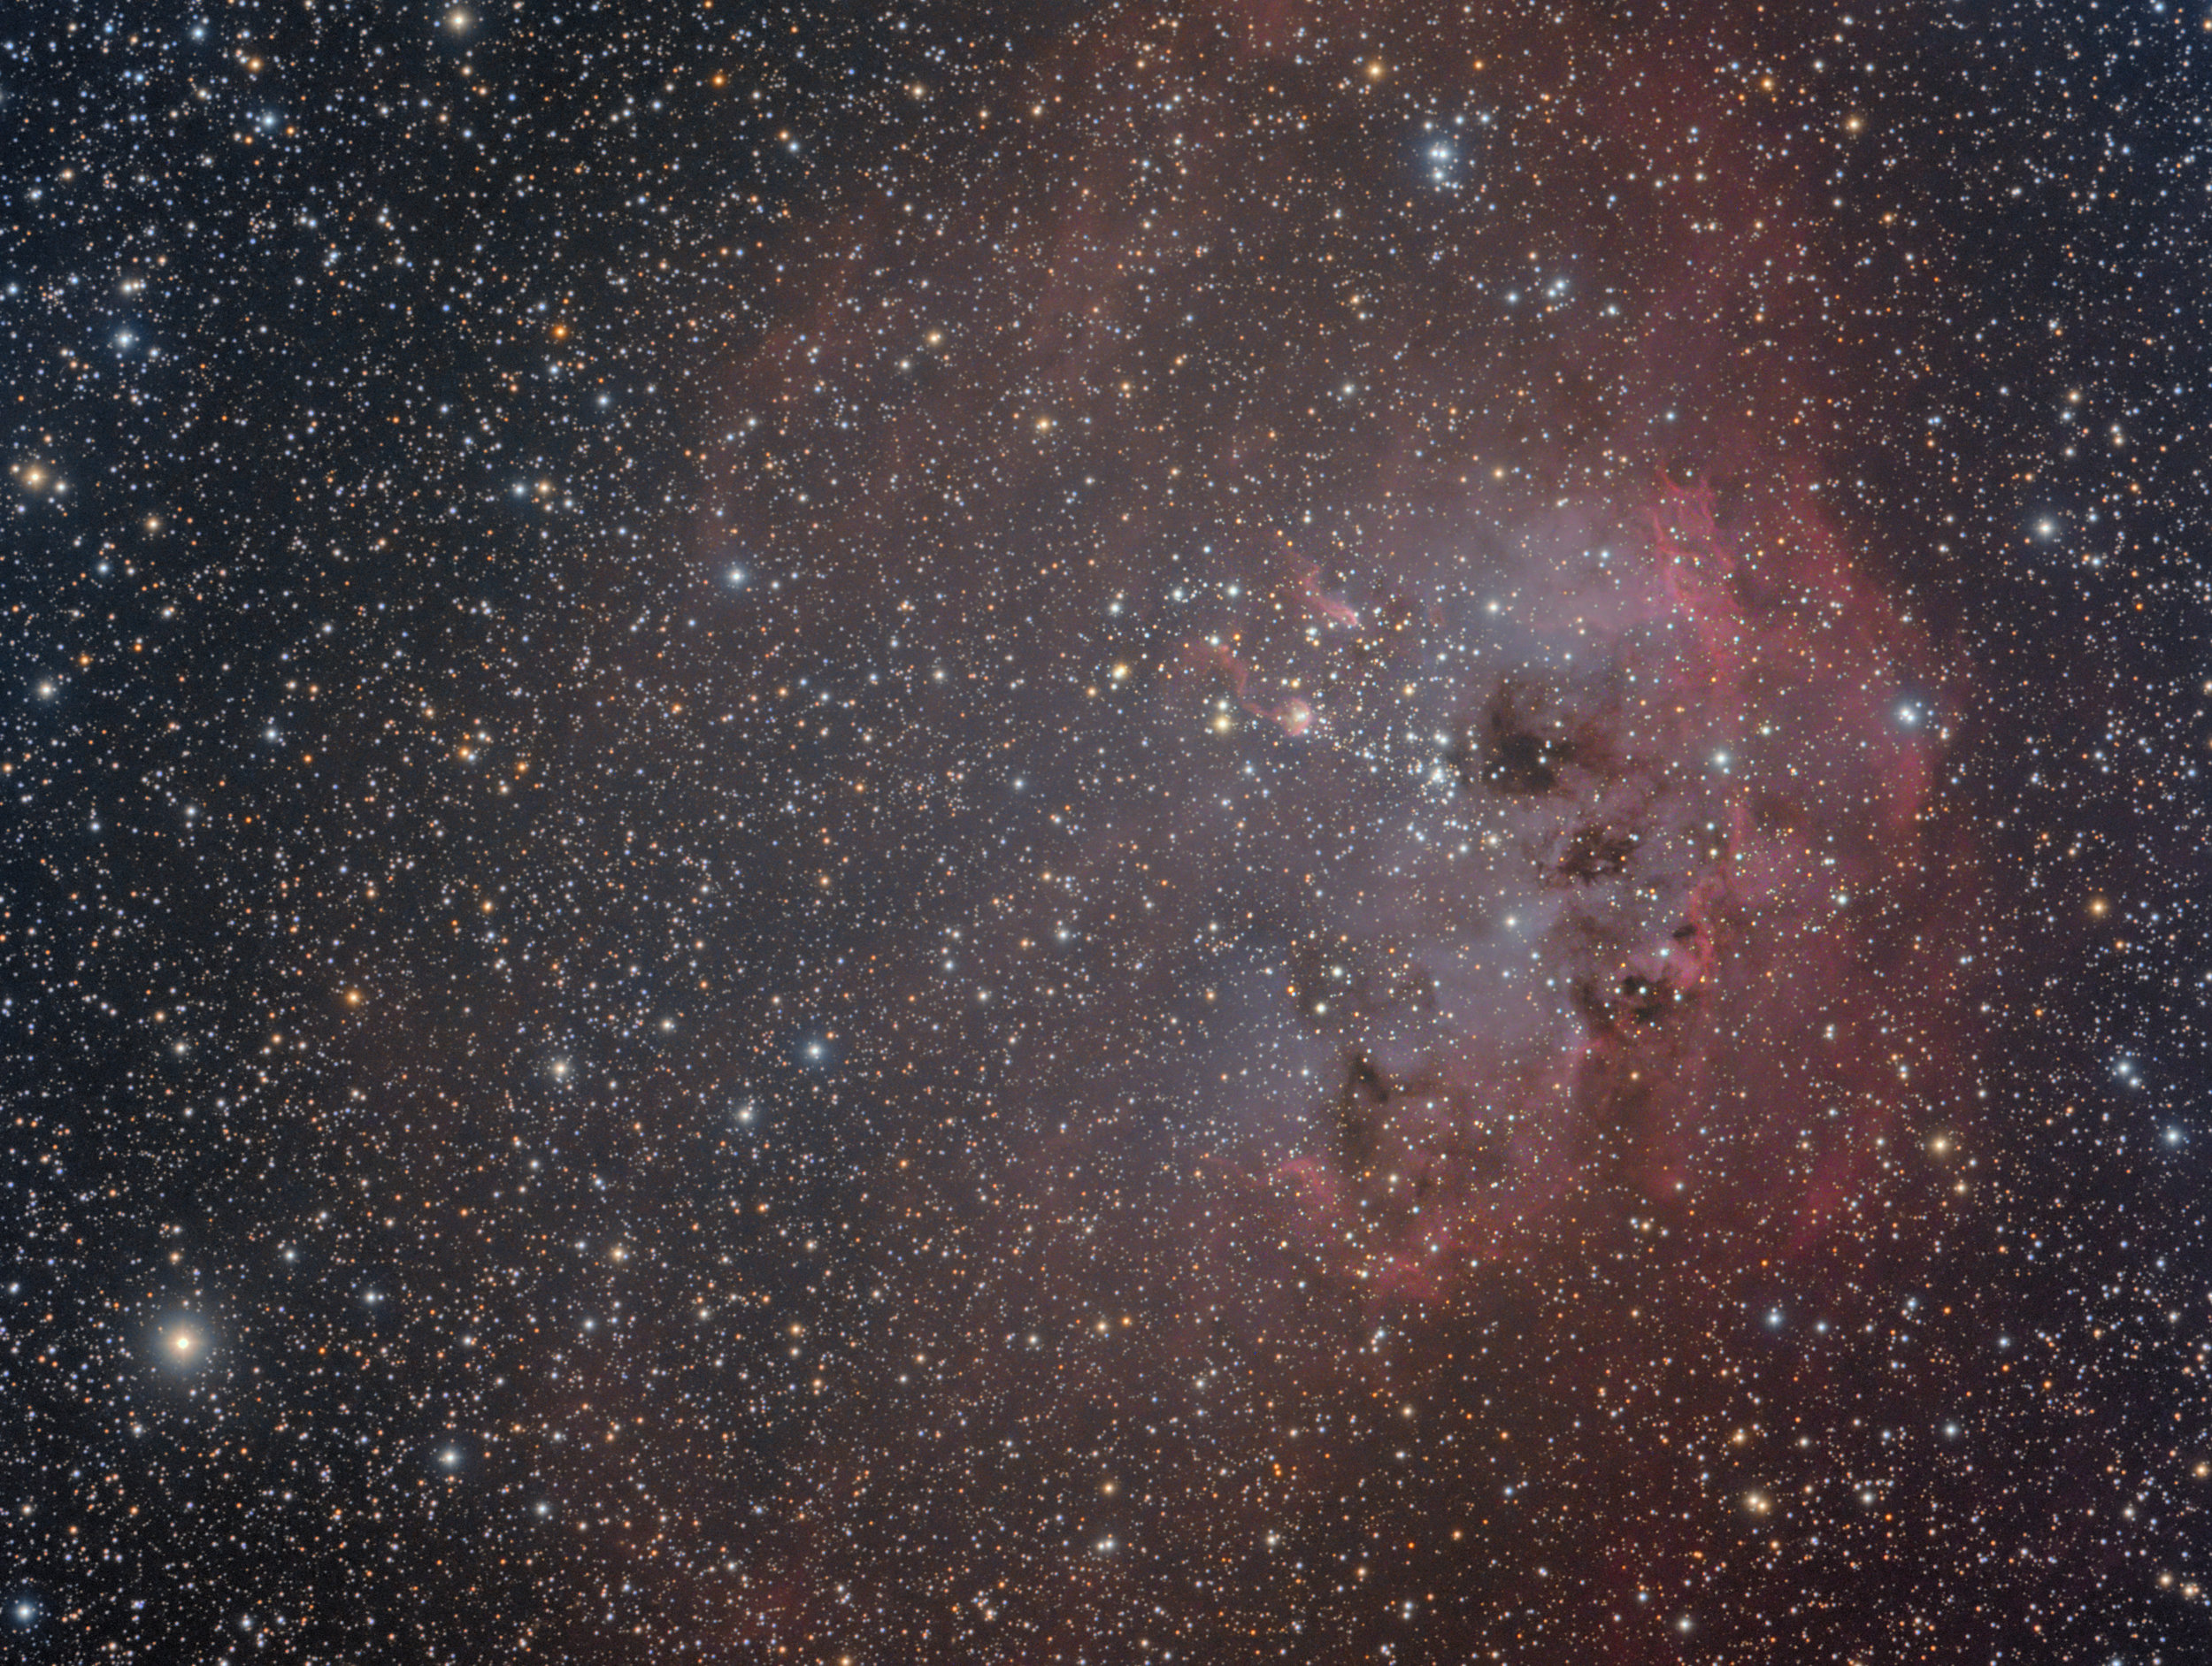 The Tadpoles in IC 410